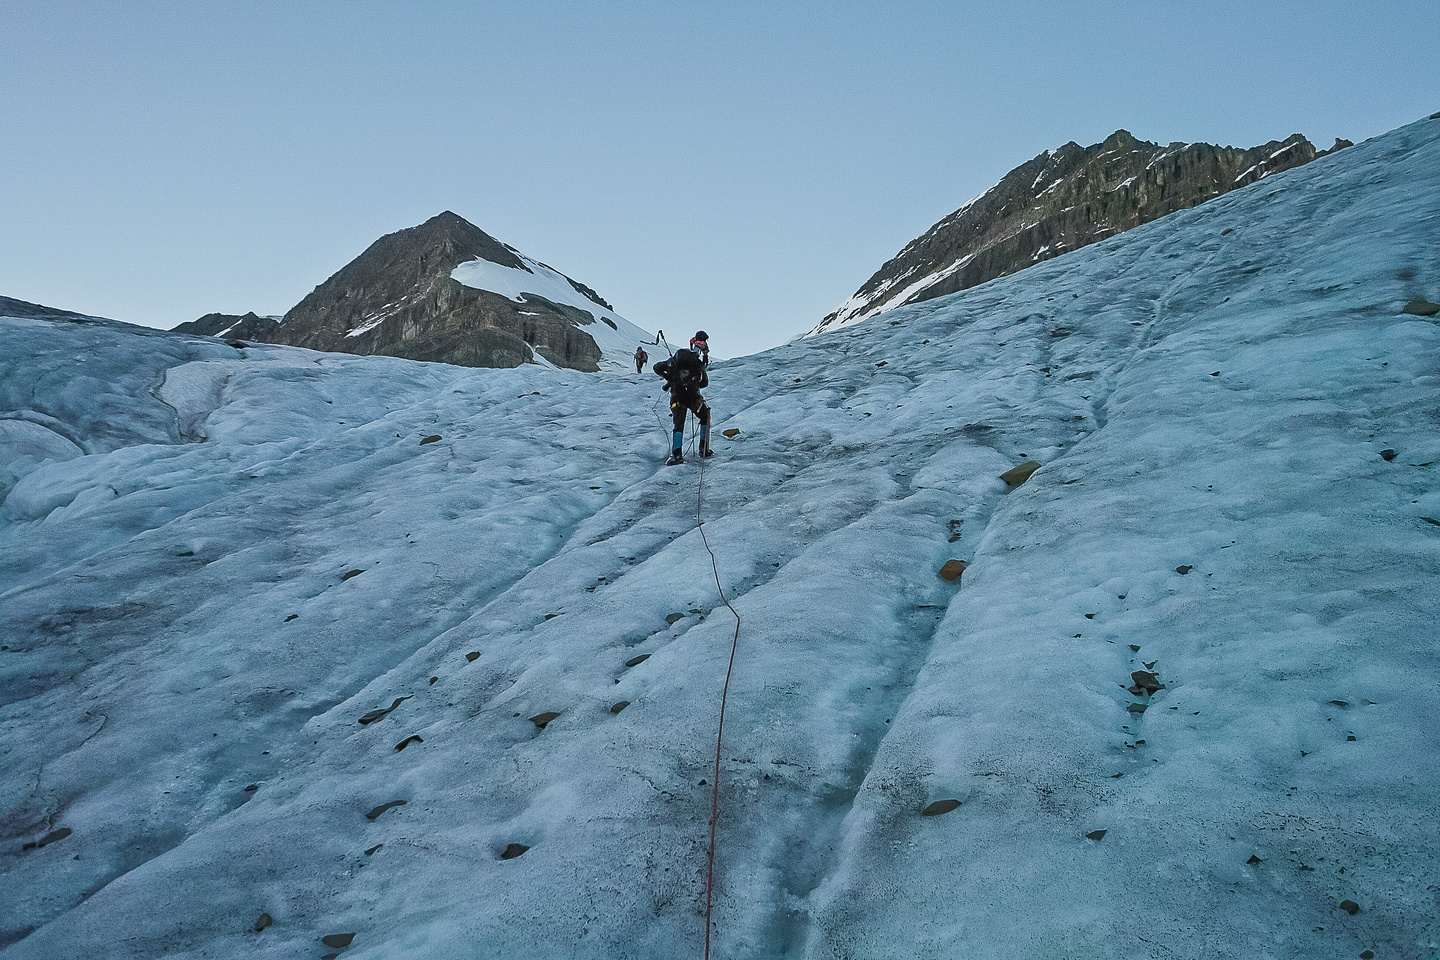 Starting up the toe of the glacier.